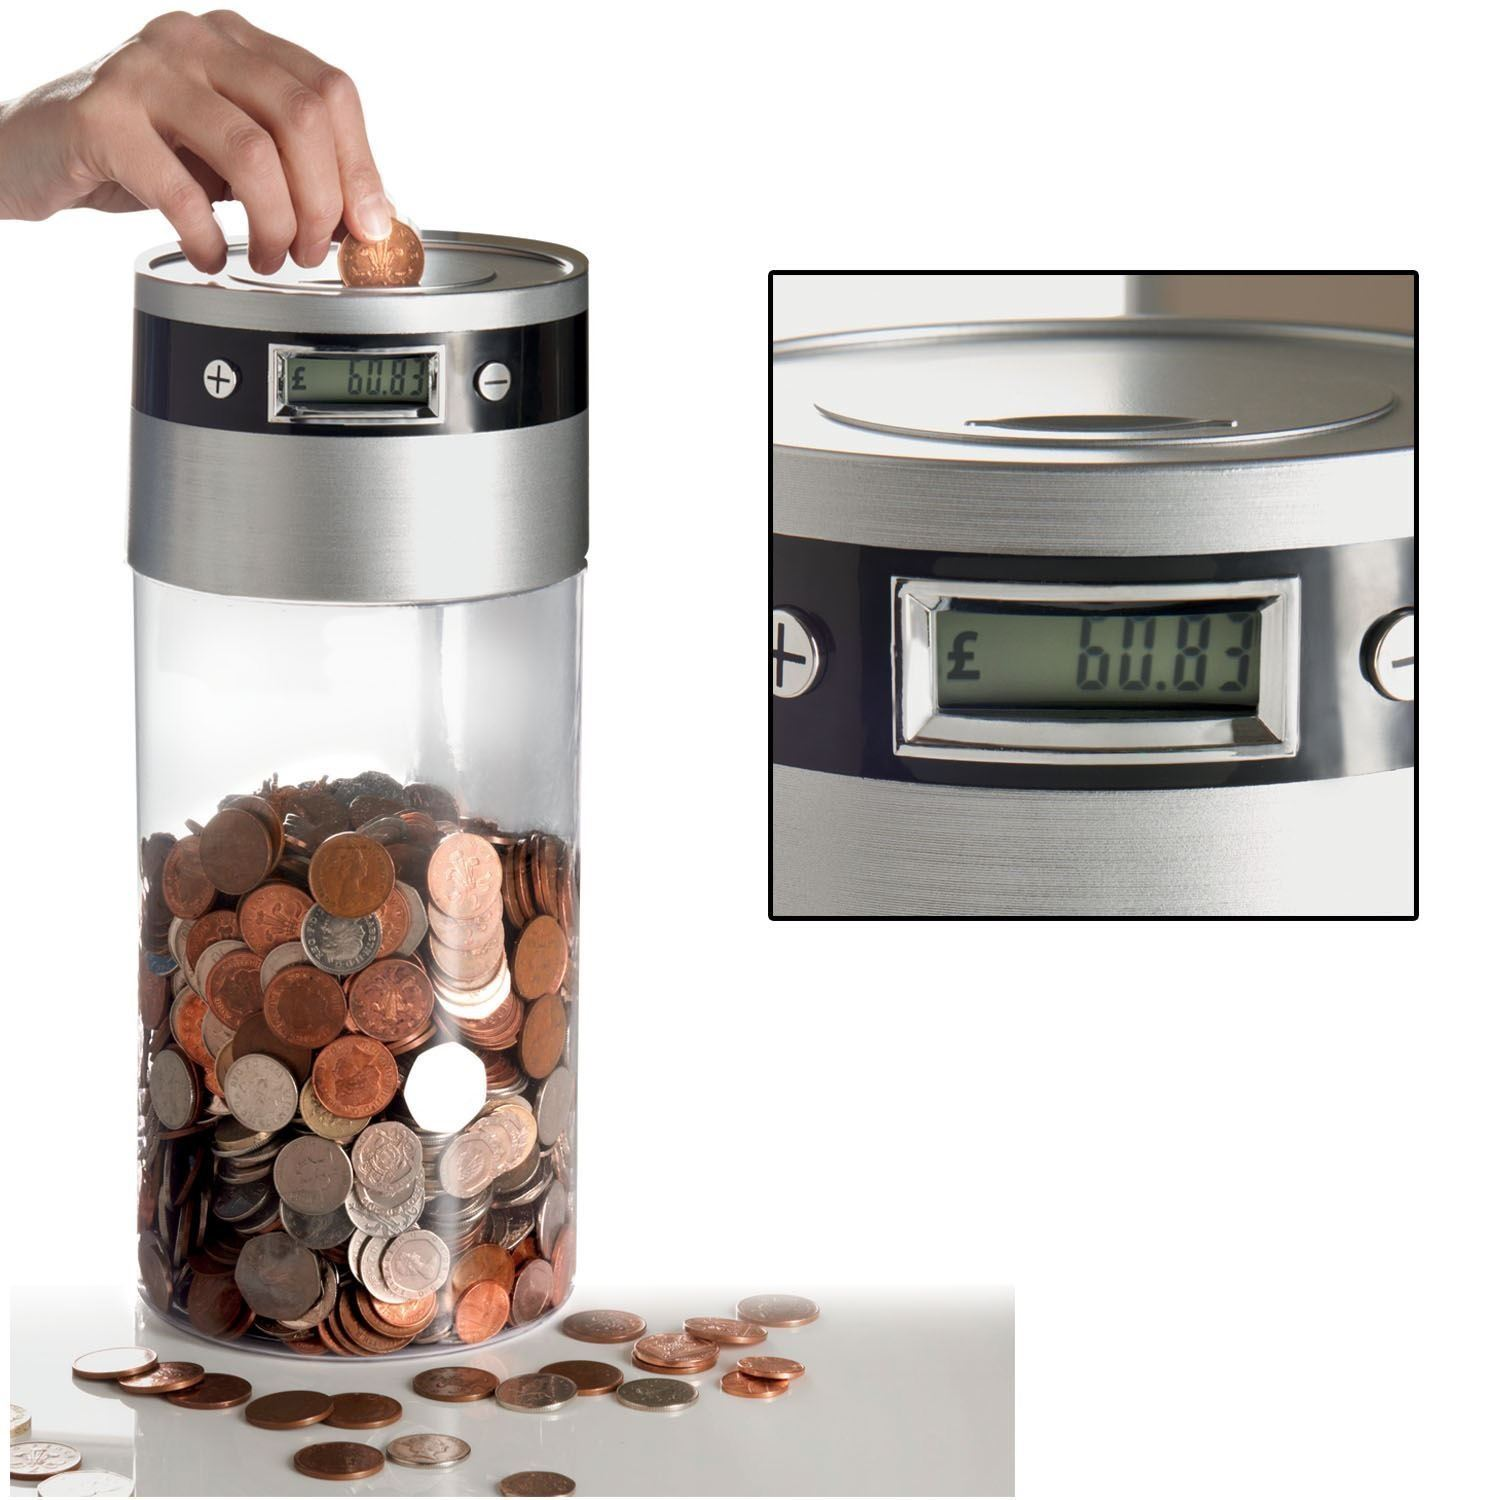 Digital coin counter lcd display jumbo jar sorter money box counts coins ebay - Sorting coin bank ...